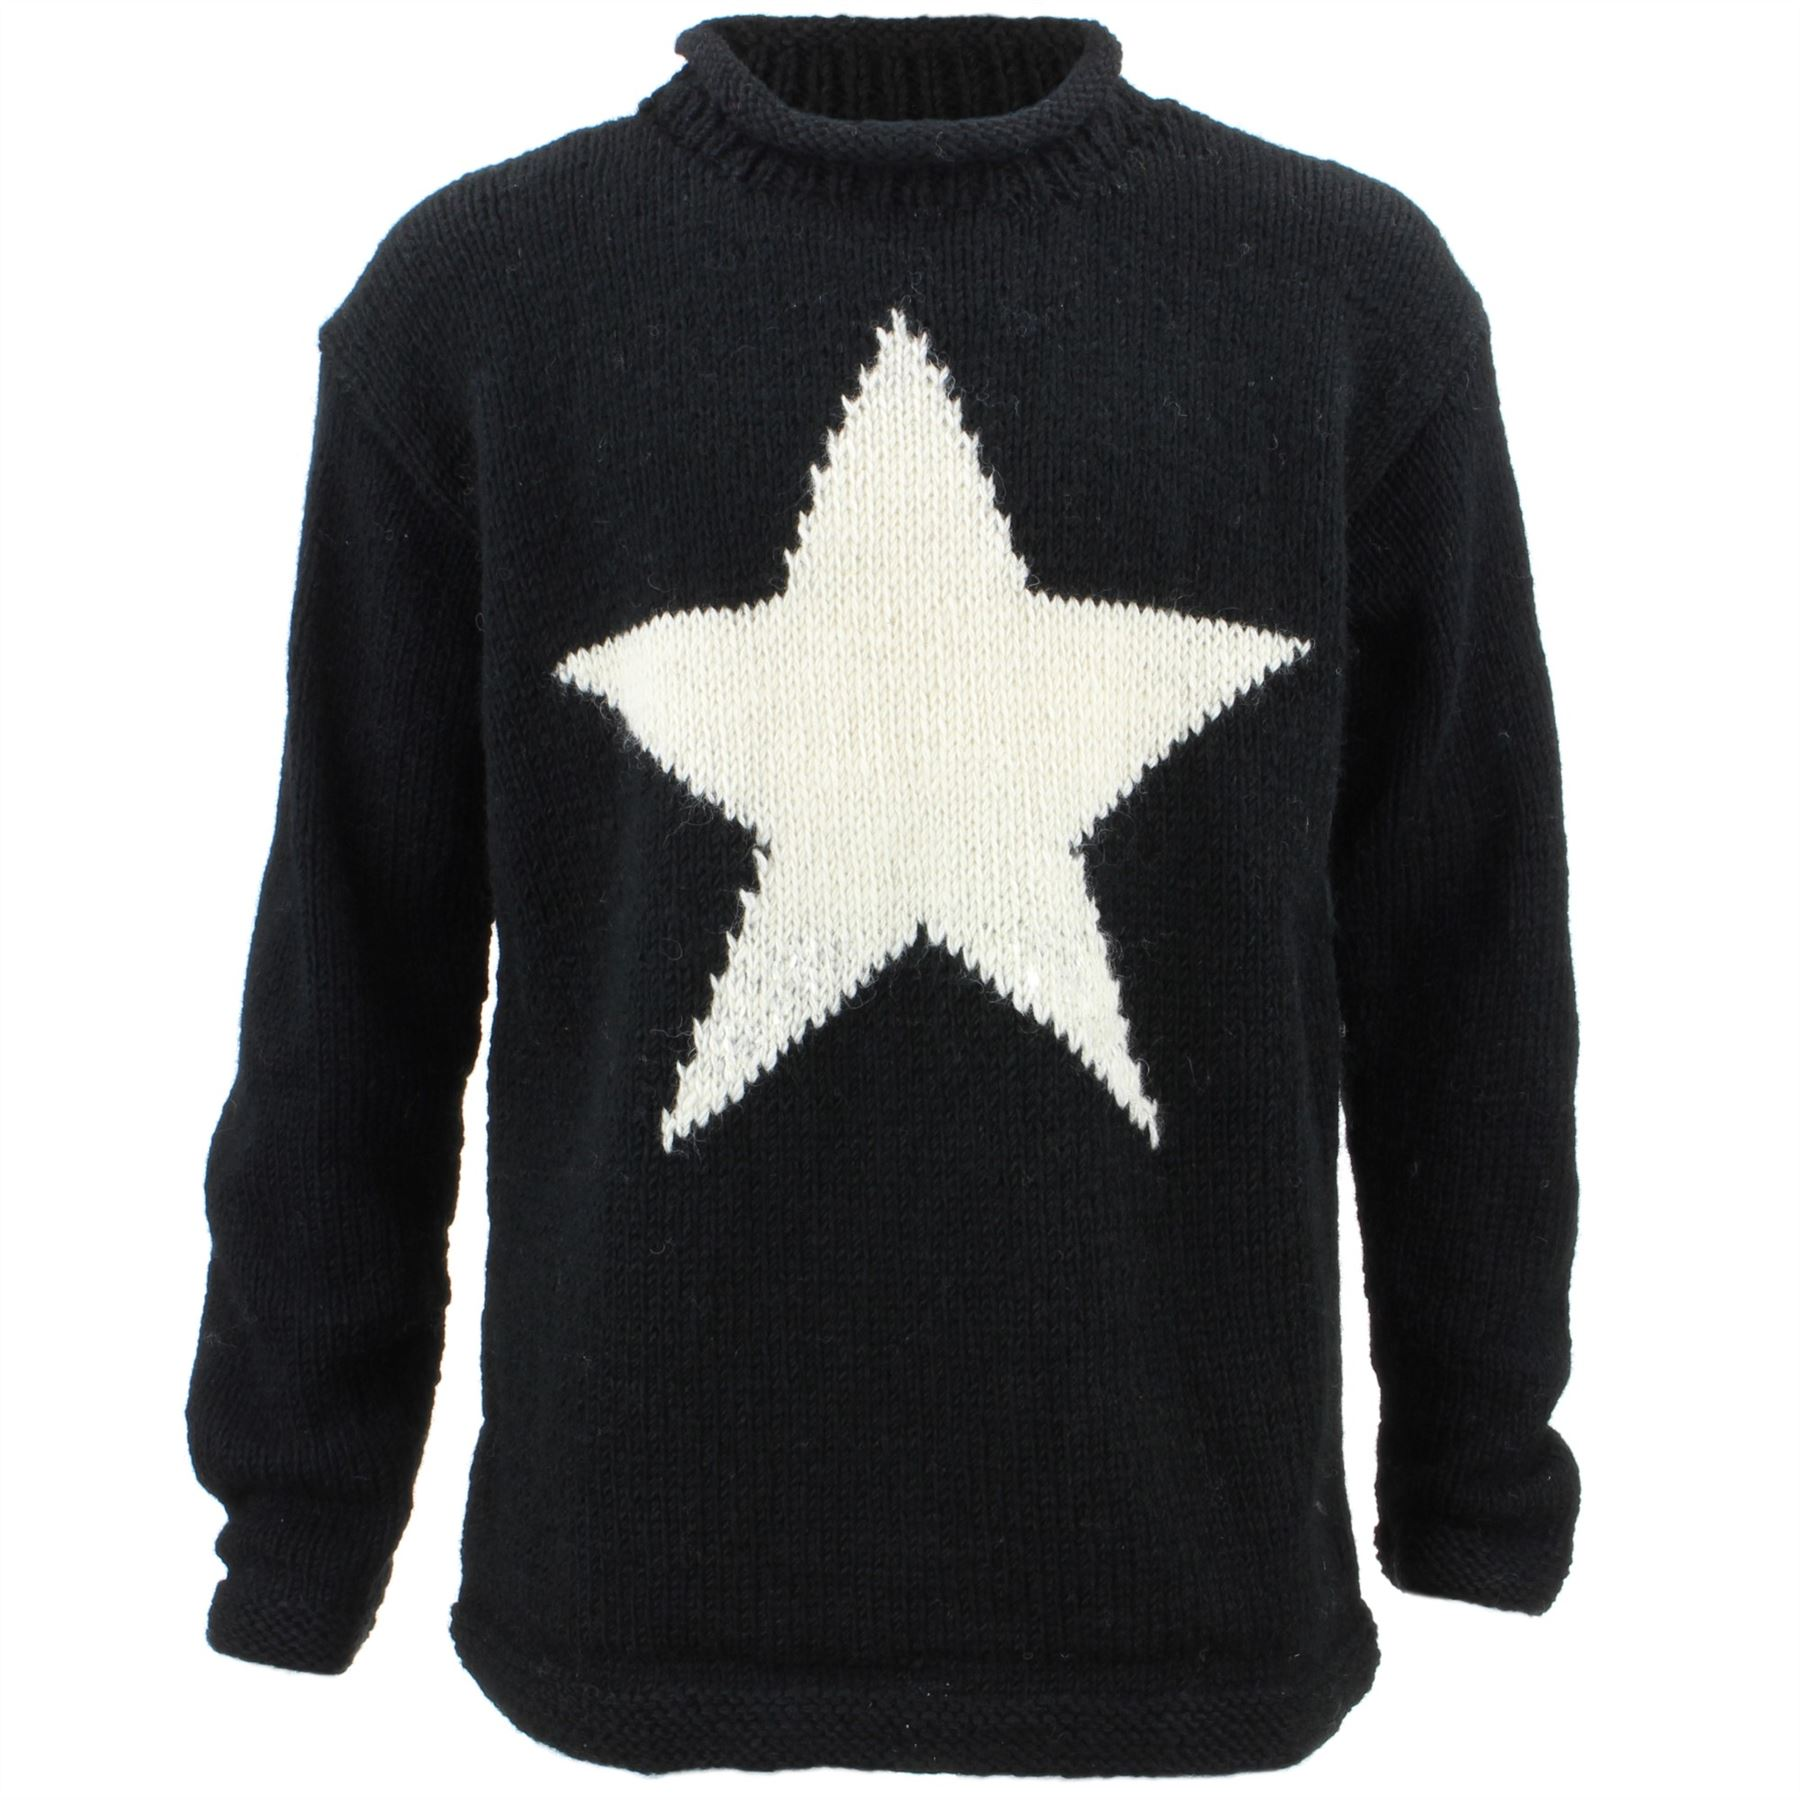 Details about Wool Jumper Star Chunky Knit Knitted Sweater Pullover Rolled  Crew Neck Black 89c29242f3a3